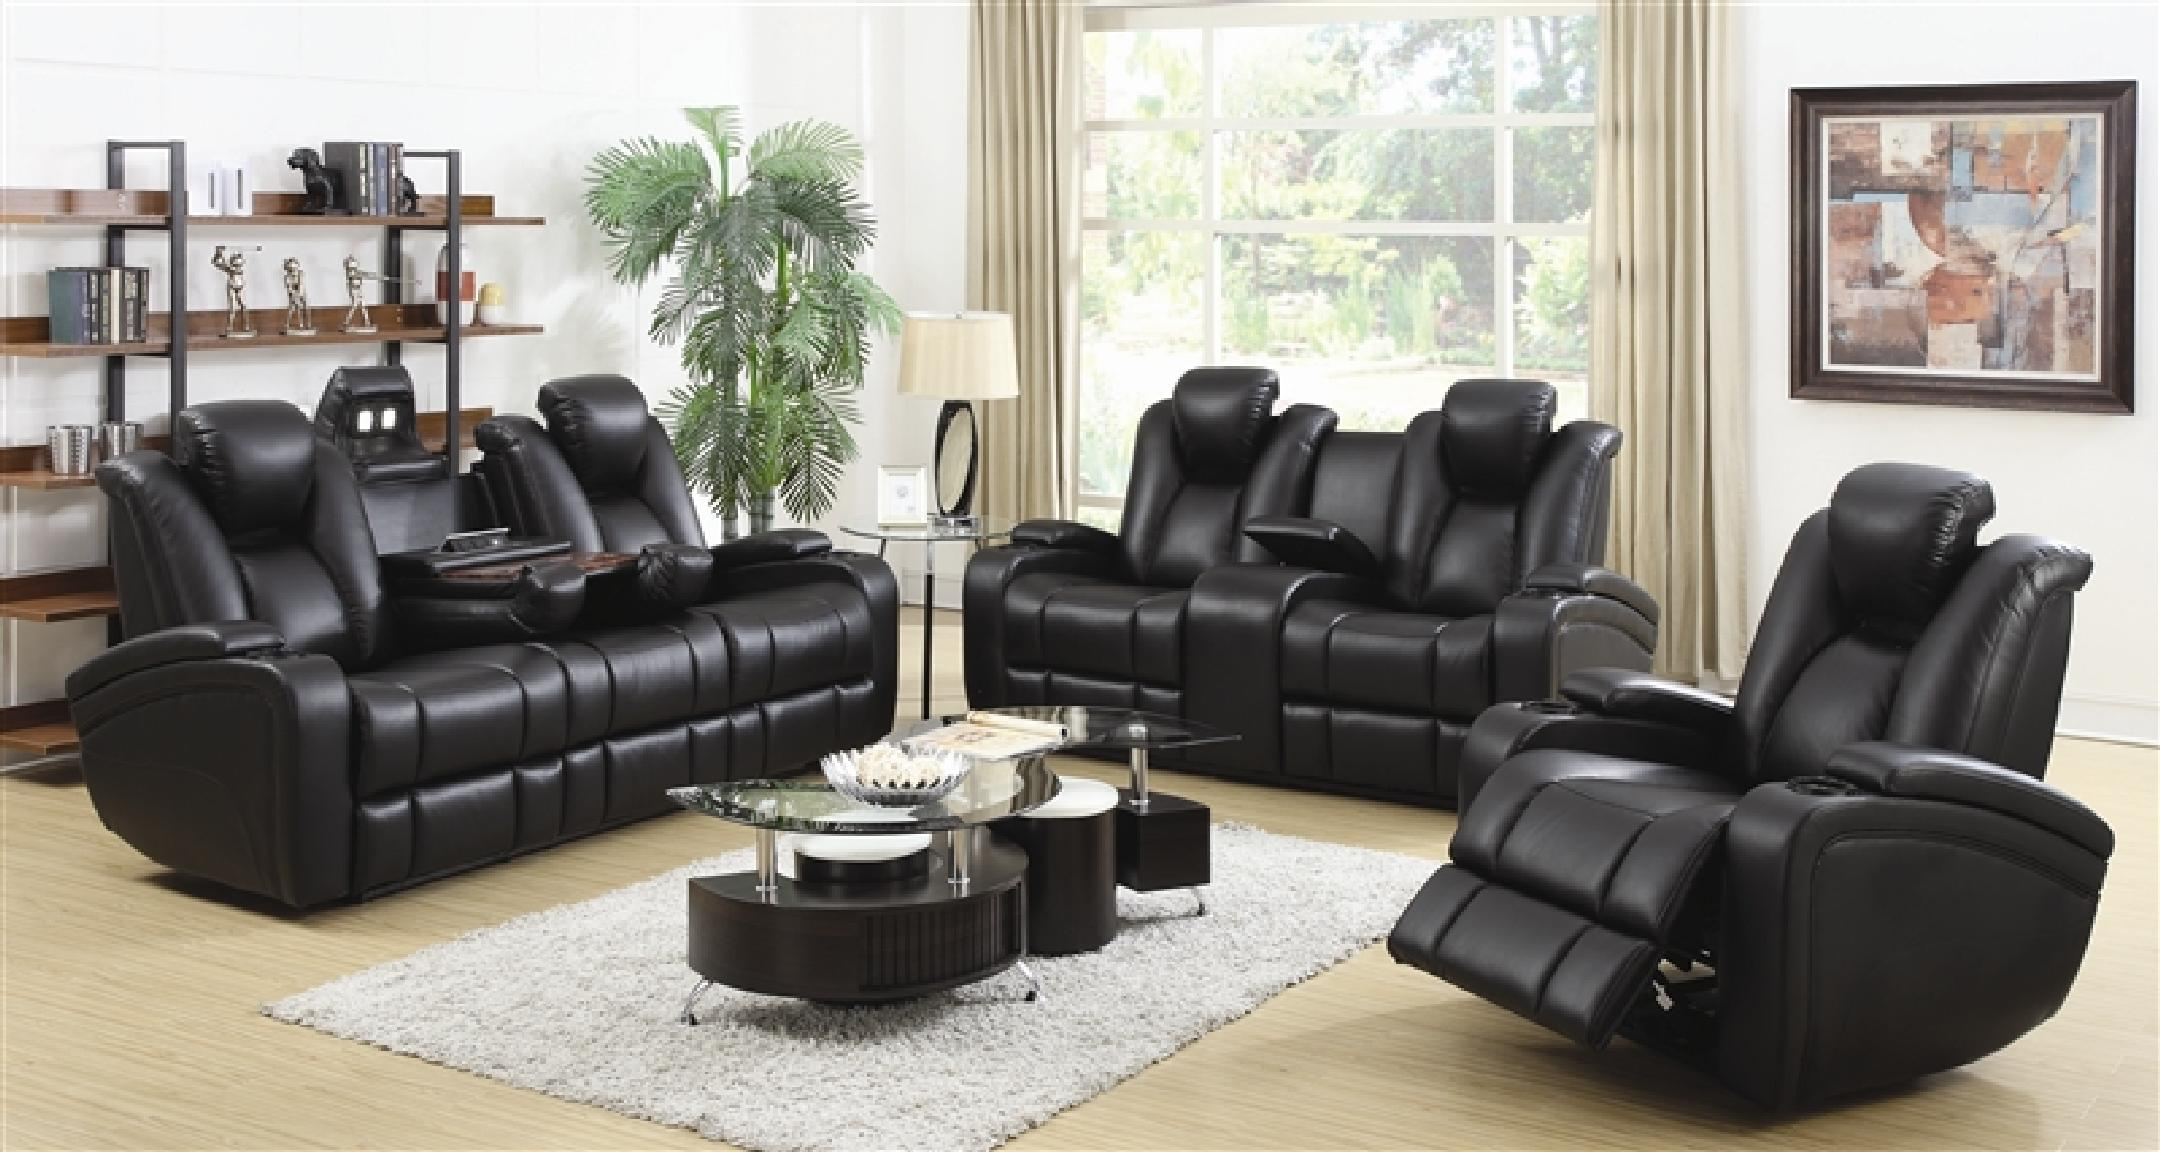 Zoe Furniture In Grand Prairie Tx Furniture Stores Yellow Pages Directory Inc